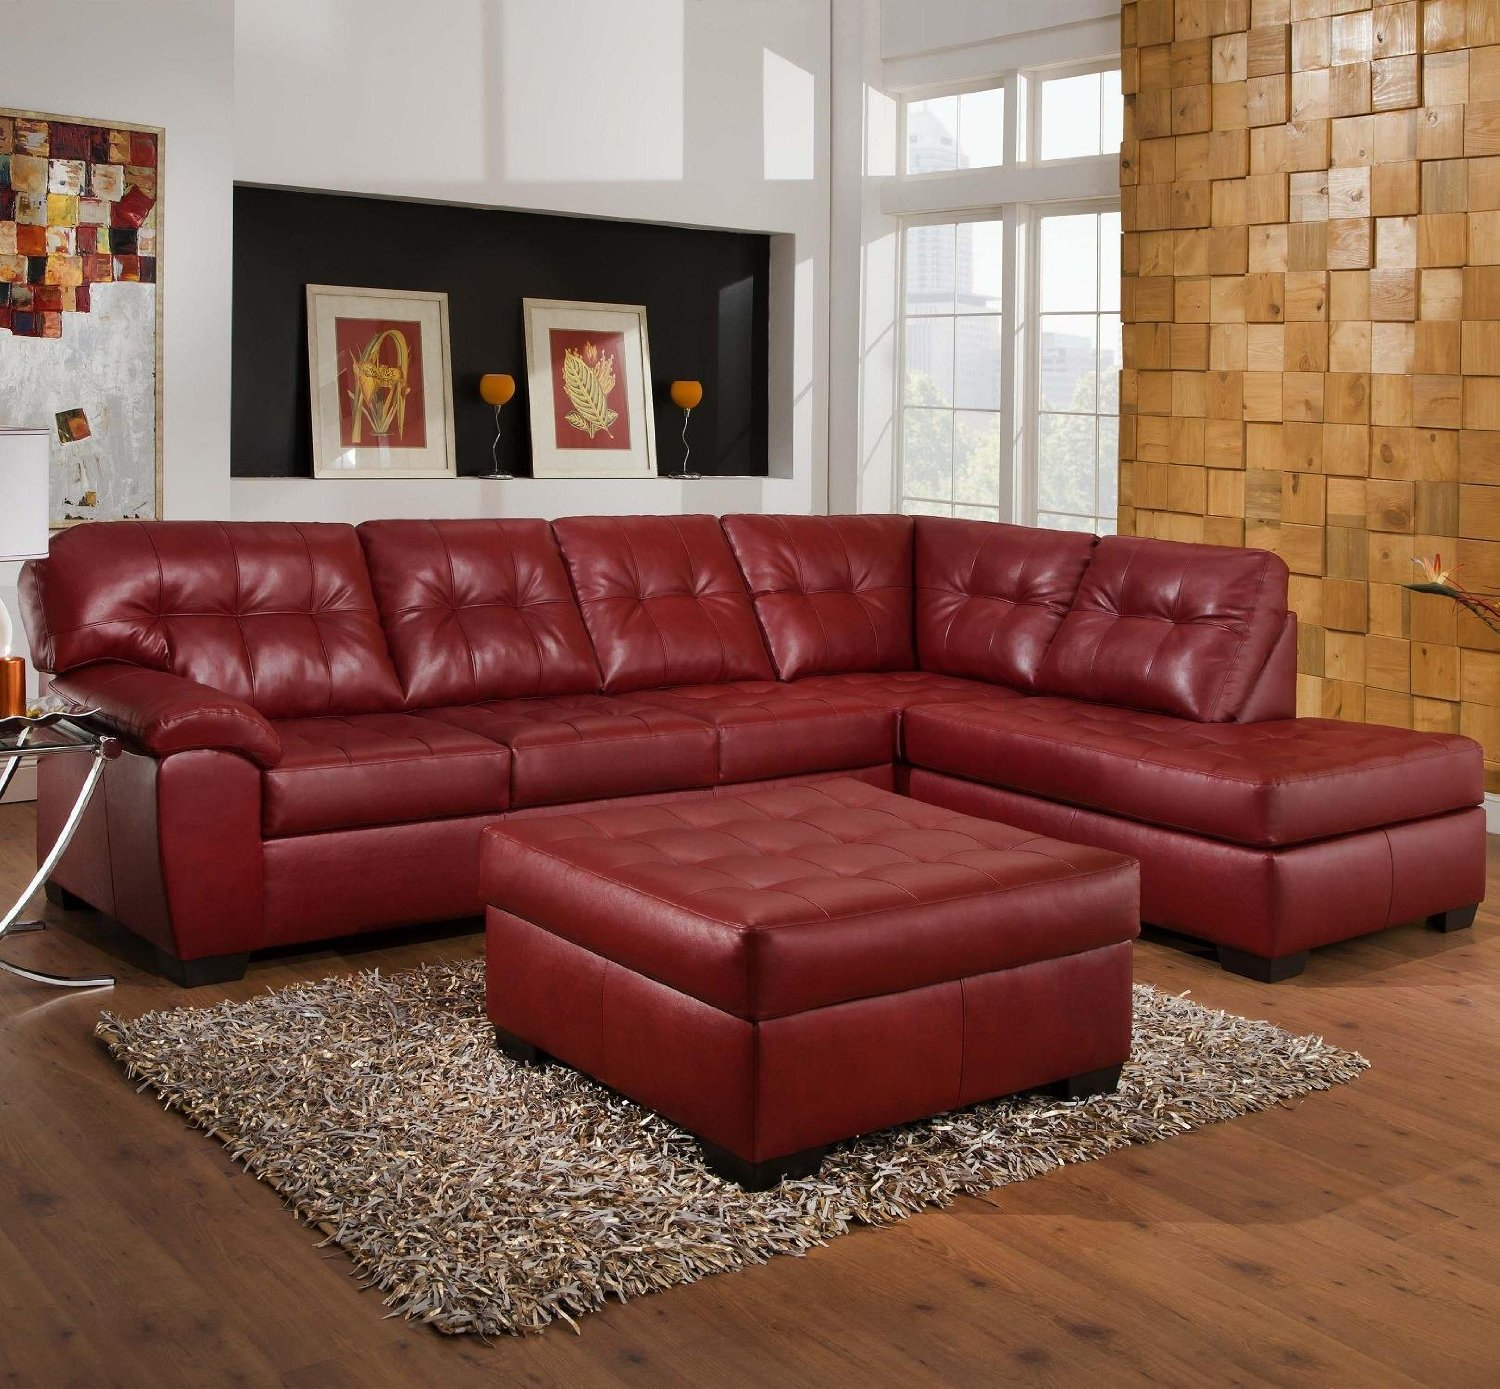 Attractive Red Leather Sofa for Interior Living Room ...